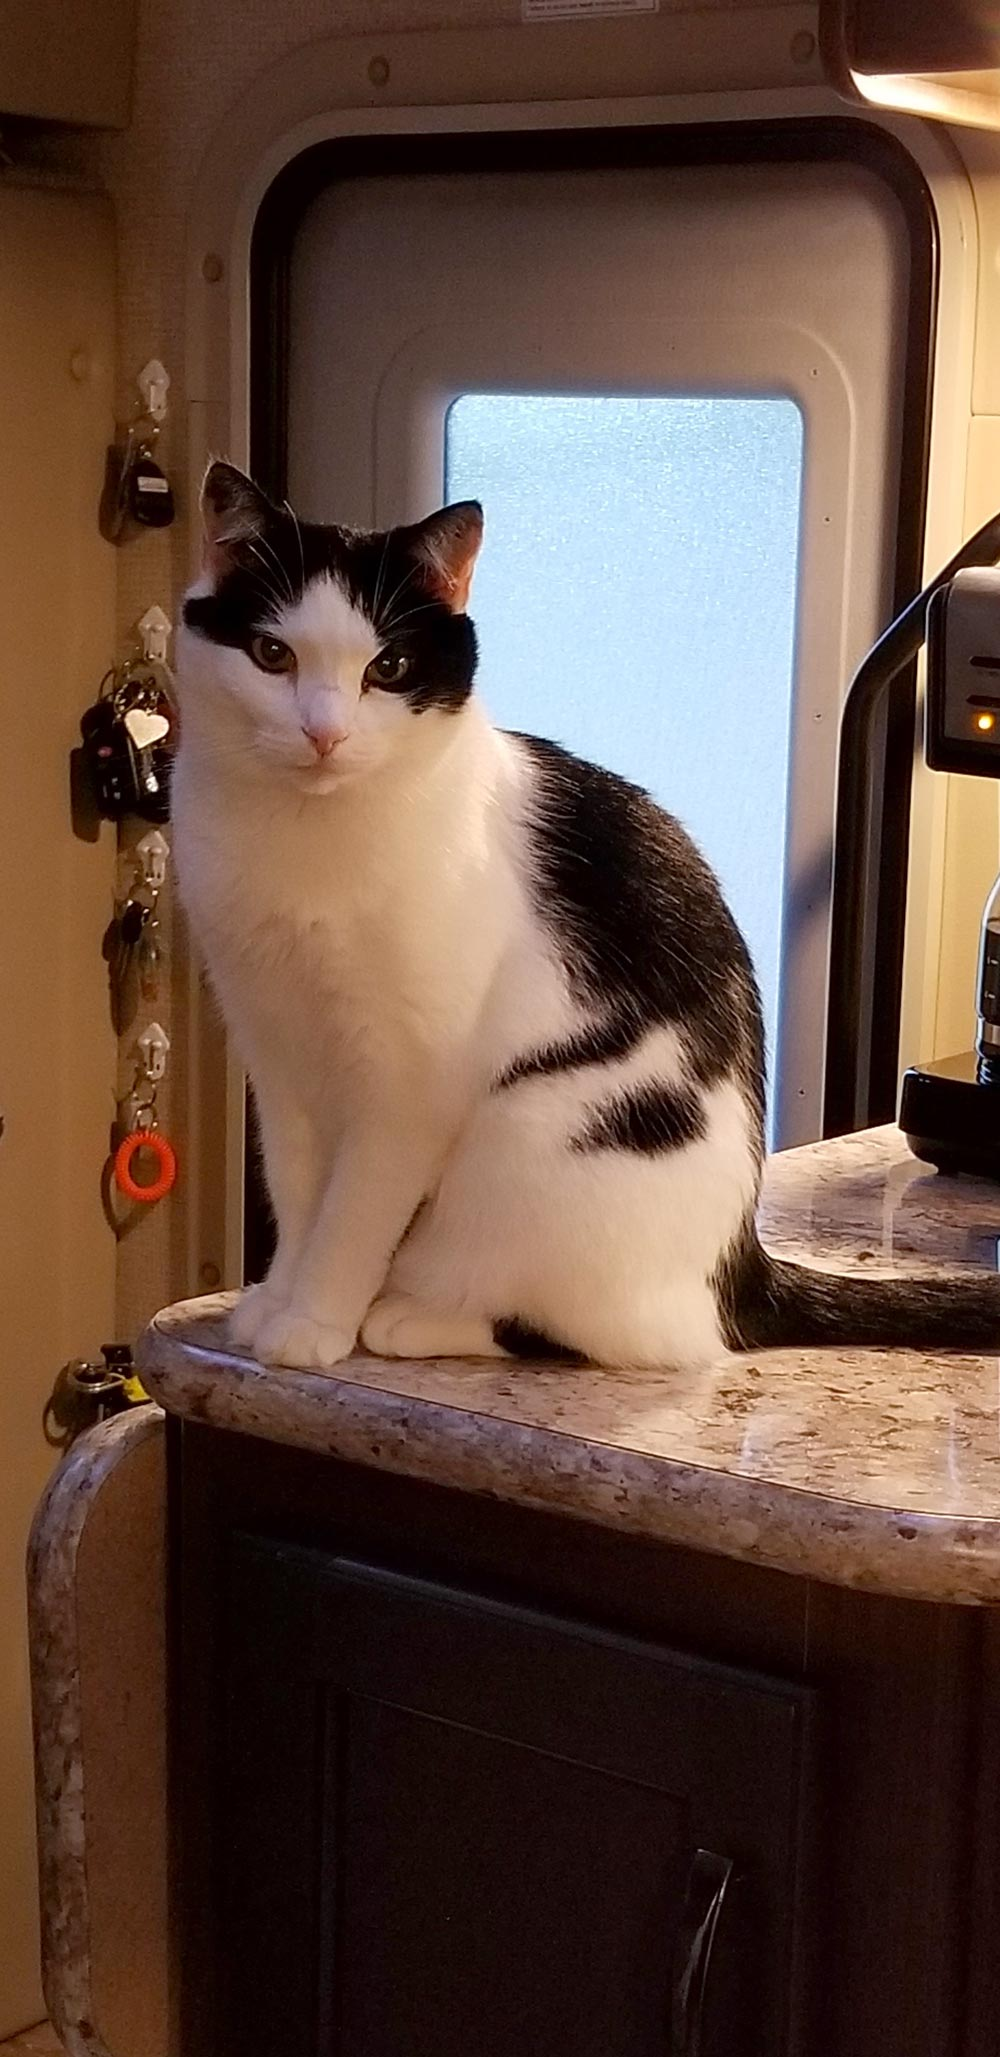 Meet Jay II, Epping, NH's Roger and Nancy's 13-year-old black and white cat who is curious about everything. When they started camping in their RV, they didn't hesitate to bring him along.